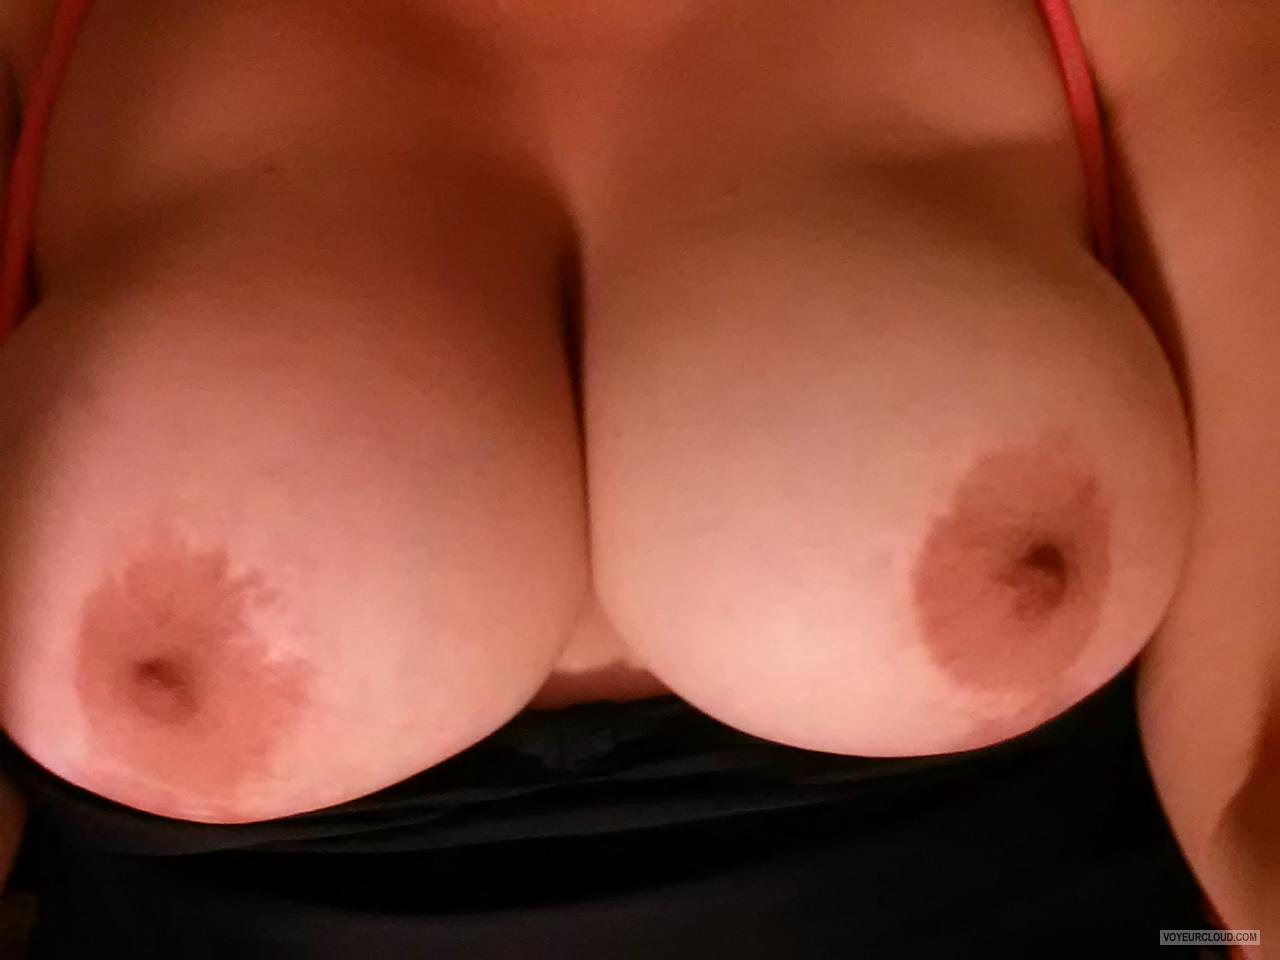 Tit Flash: My Very Big Tits (Selfie) - My Big Titties from United States